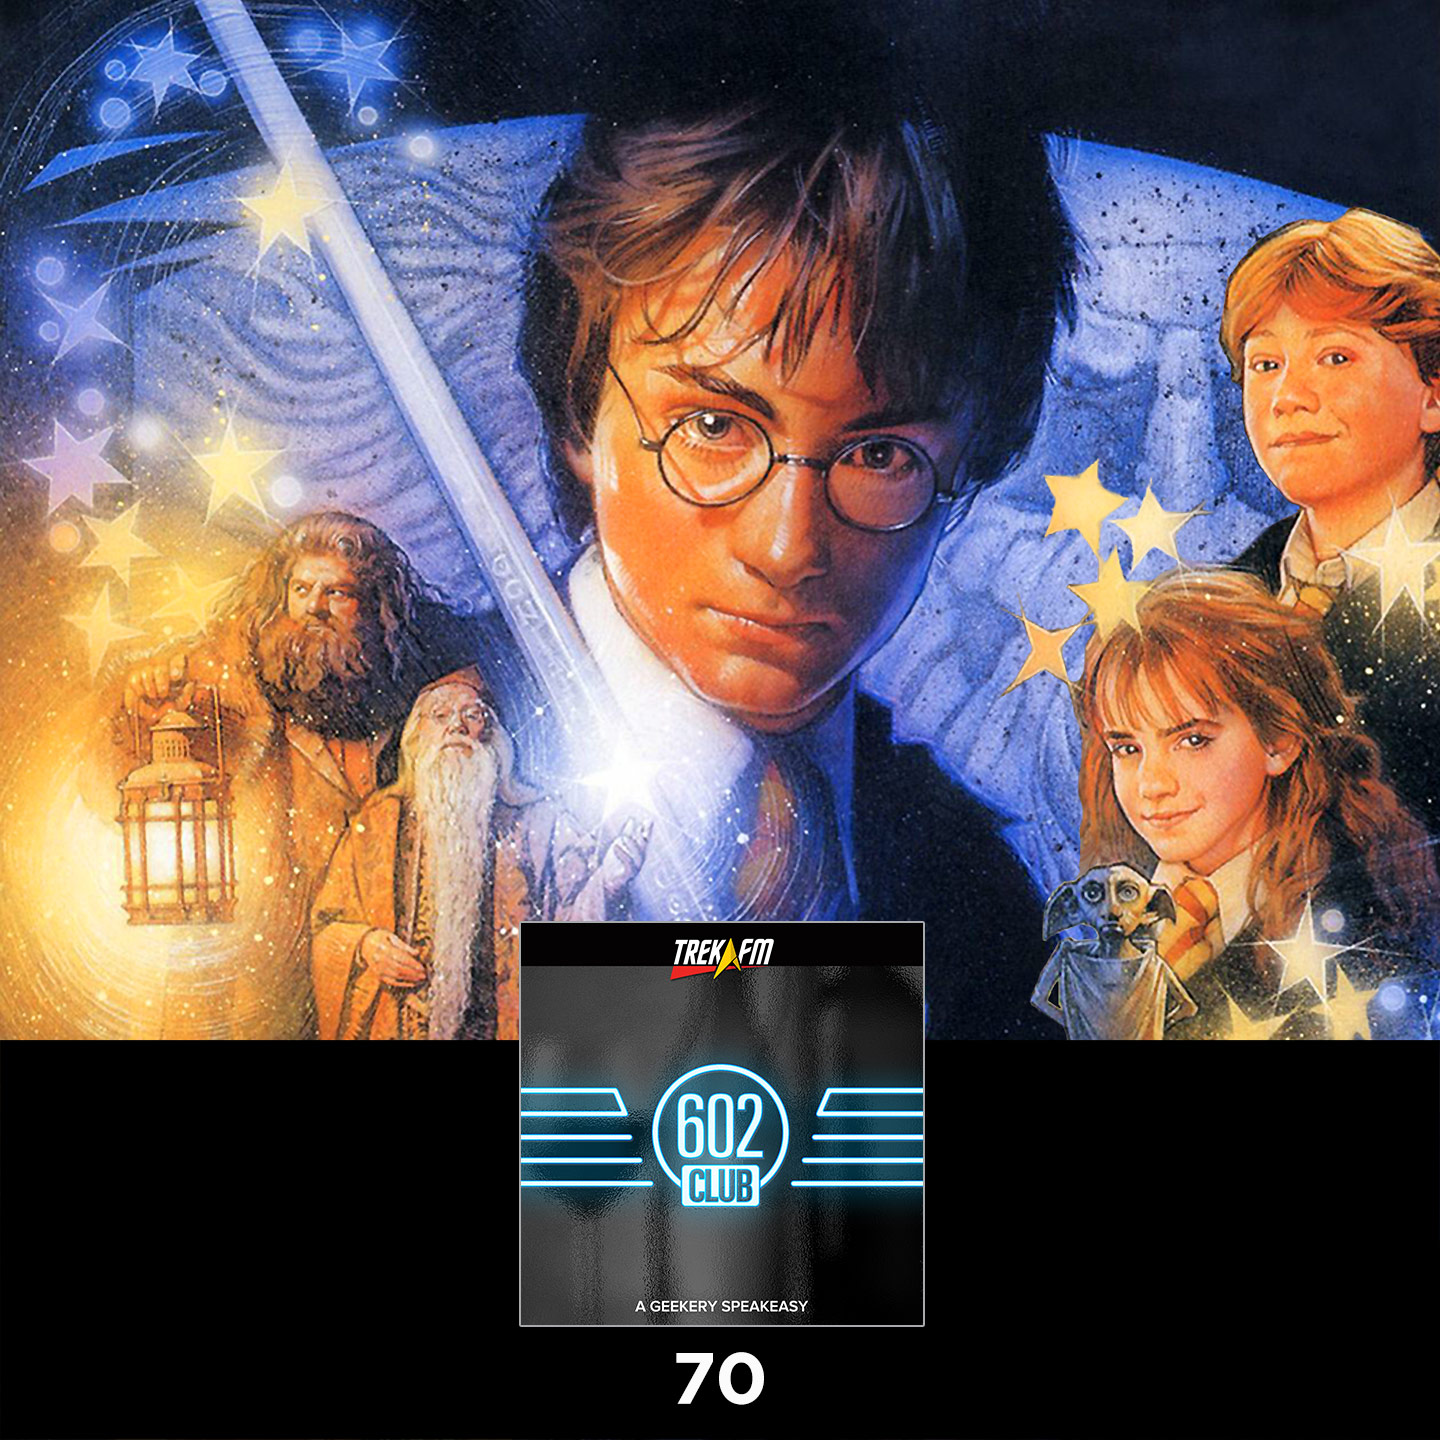 70: Broken Wand Saves the Day